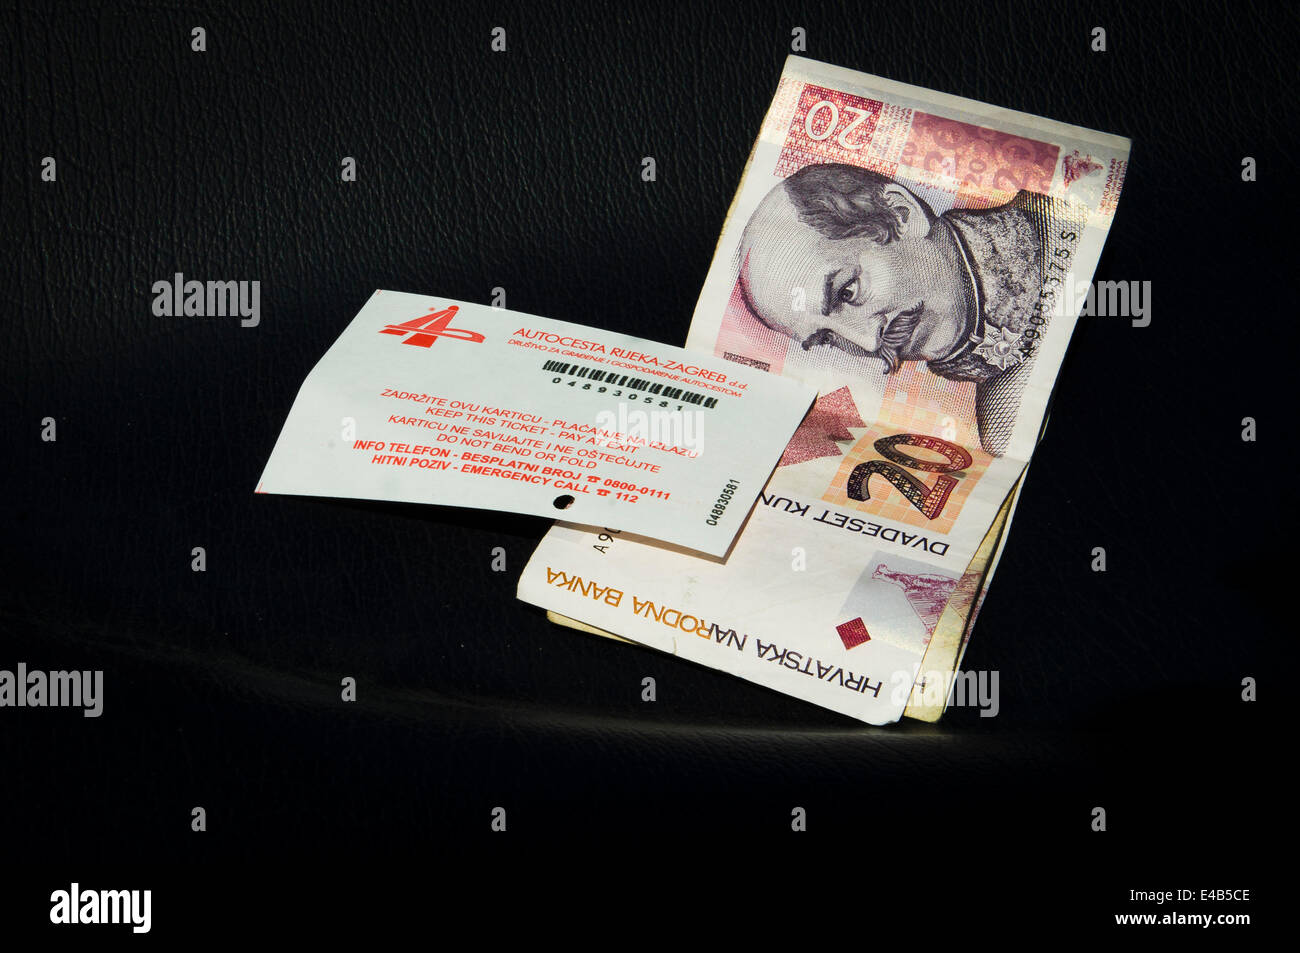 money, cash, ticket, A1 motorway, highway, Cestarina, Pay